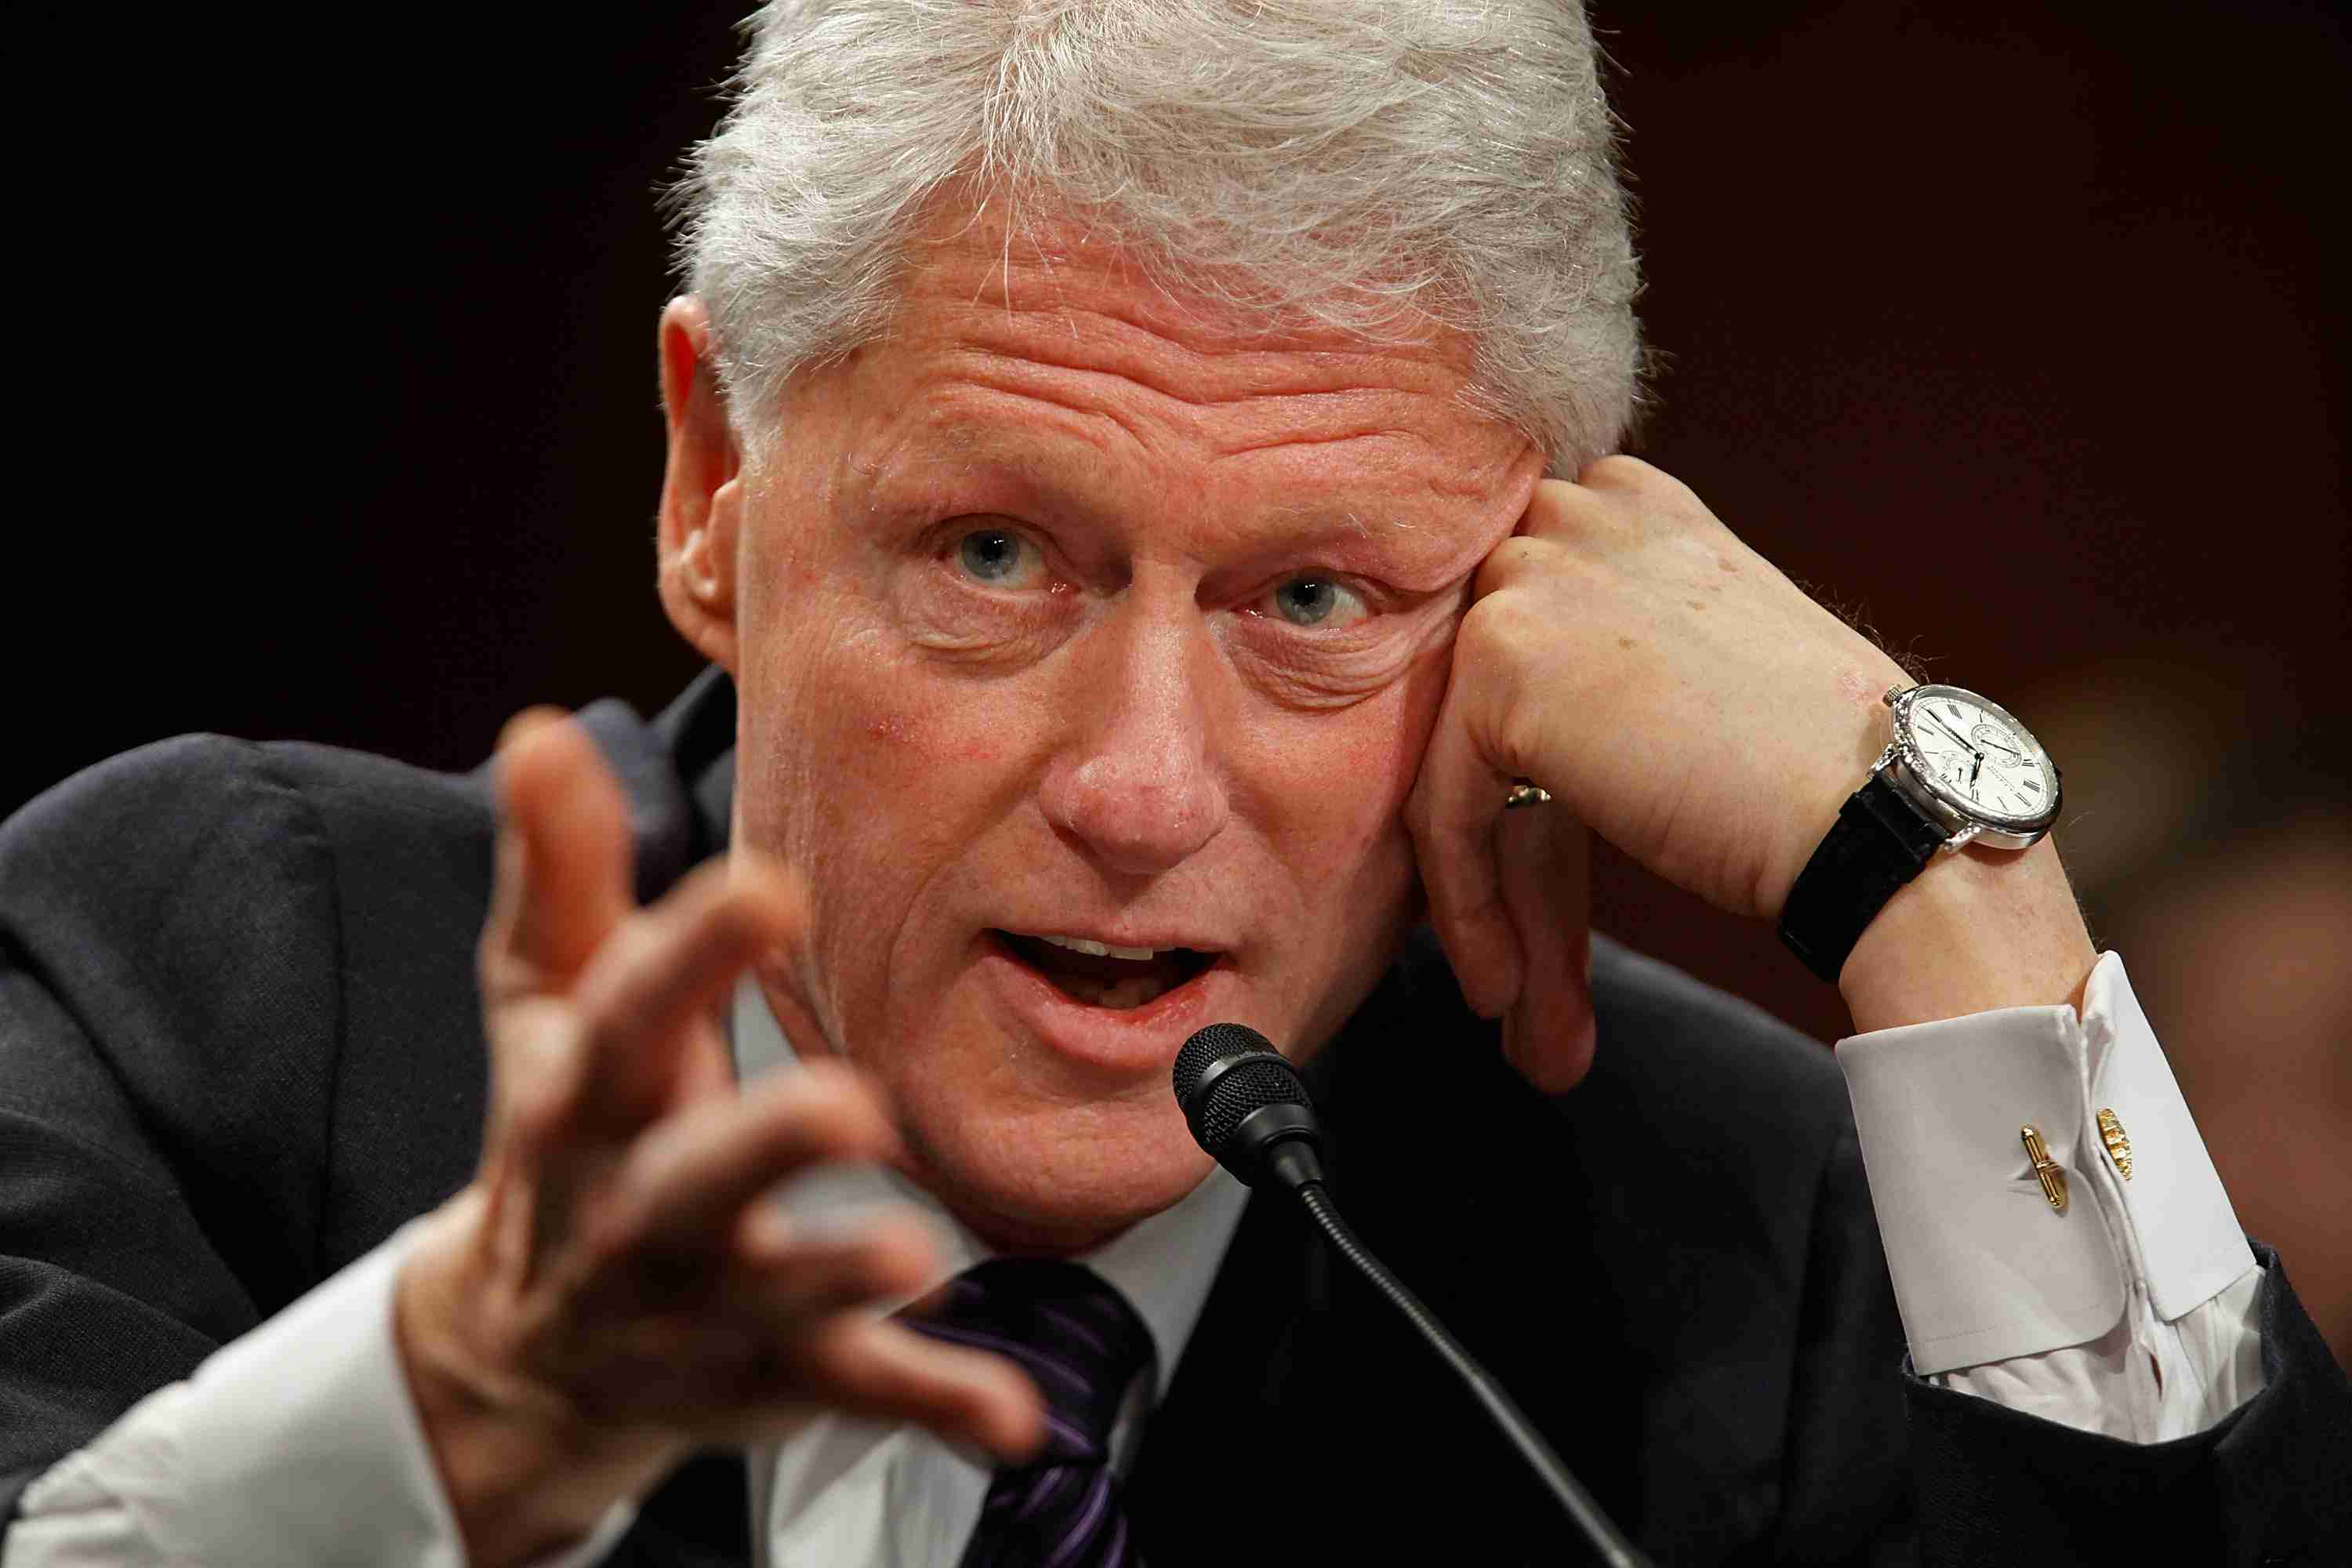 Bill Clinton Speaking into a Microphone